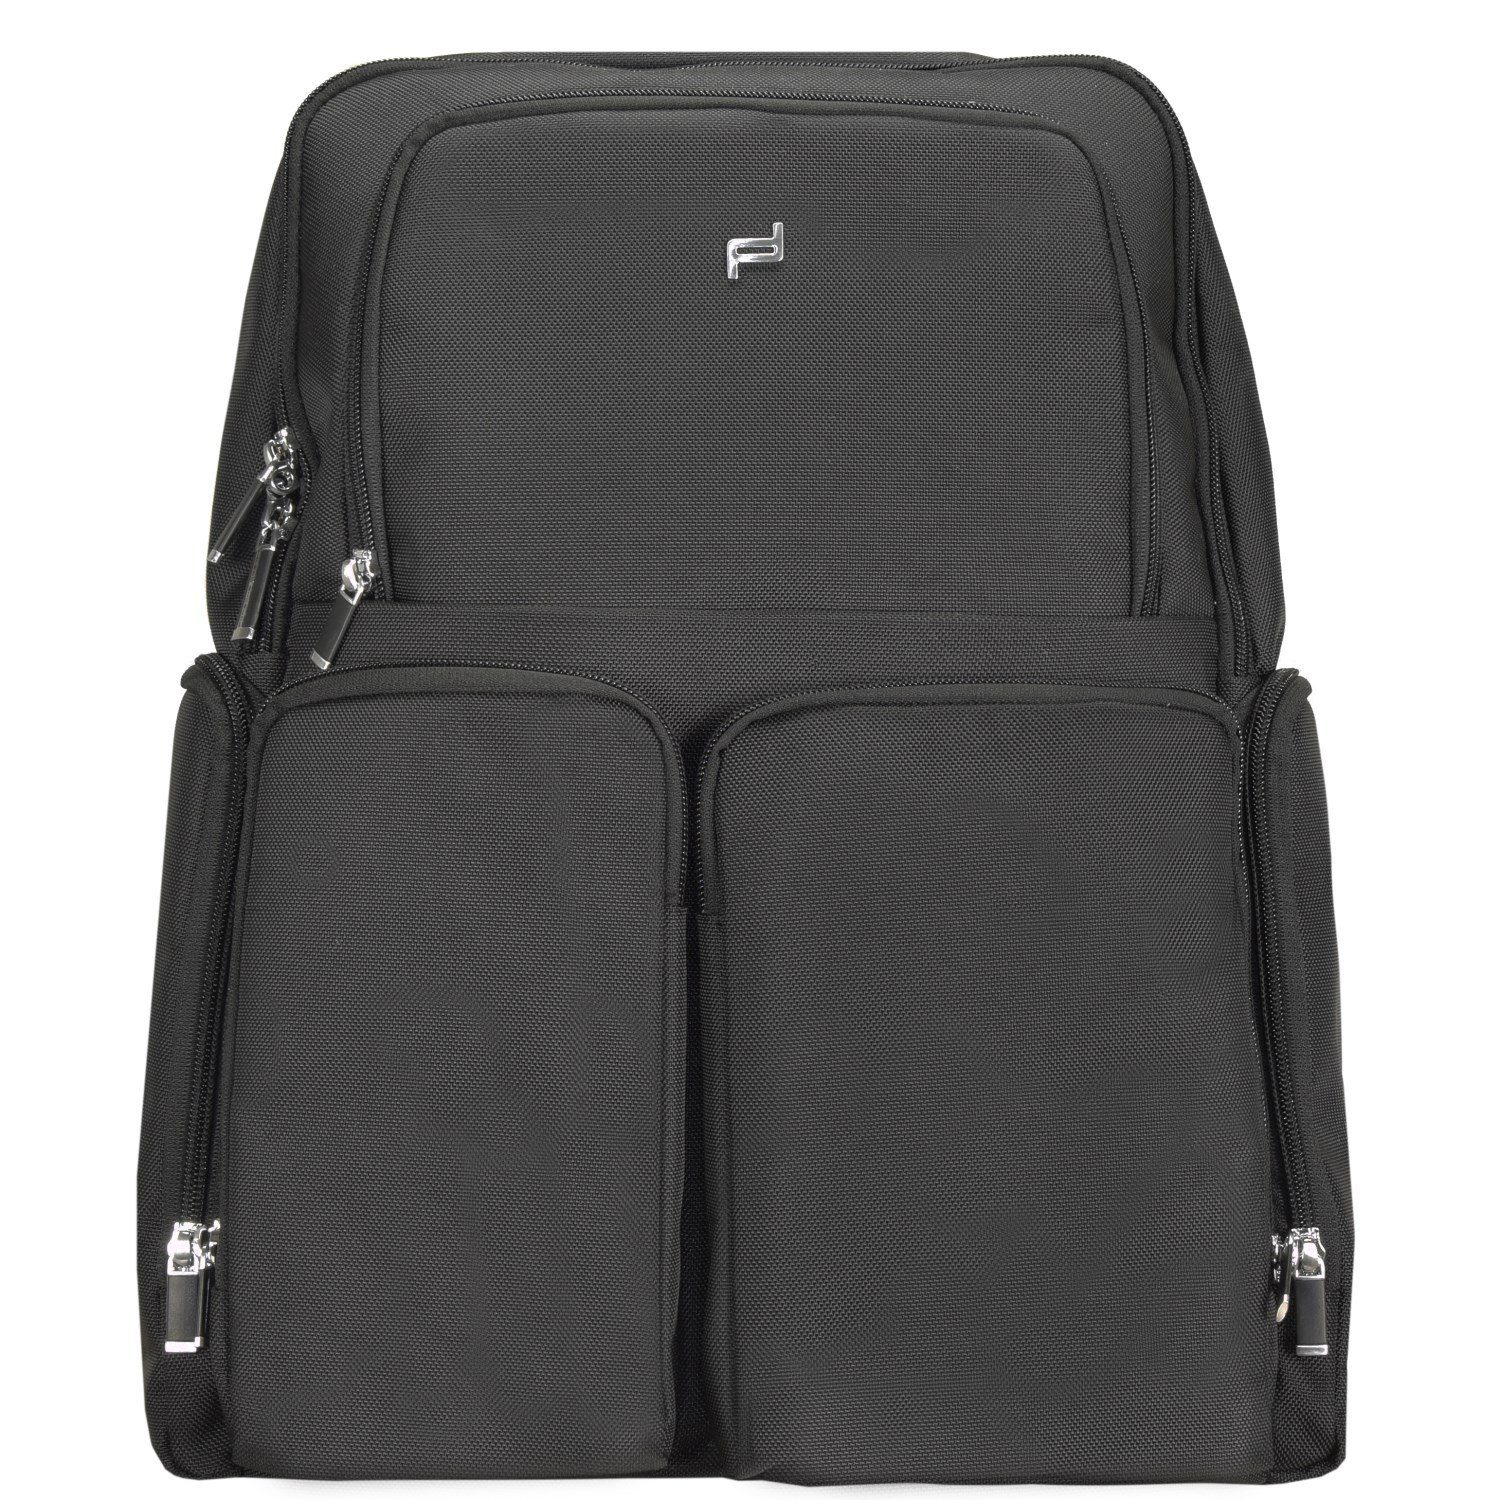 Porsche Design Roadster 3.0 BackBag L 40 cm Laptopfach